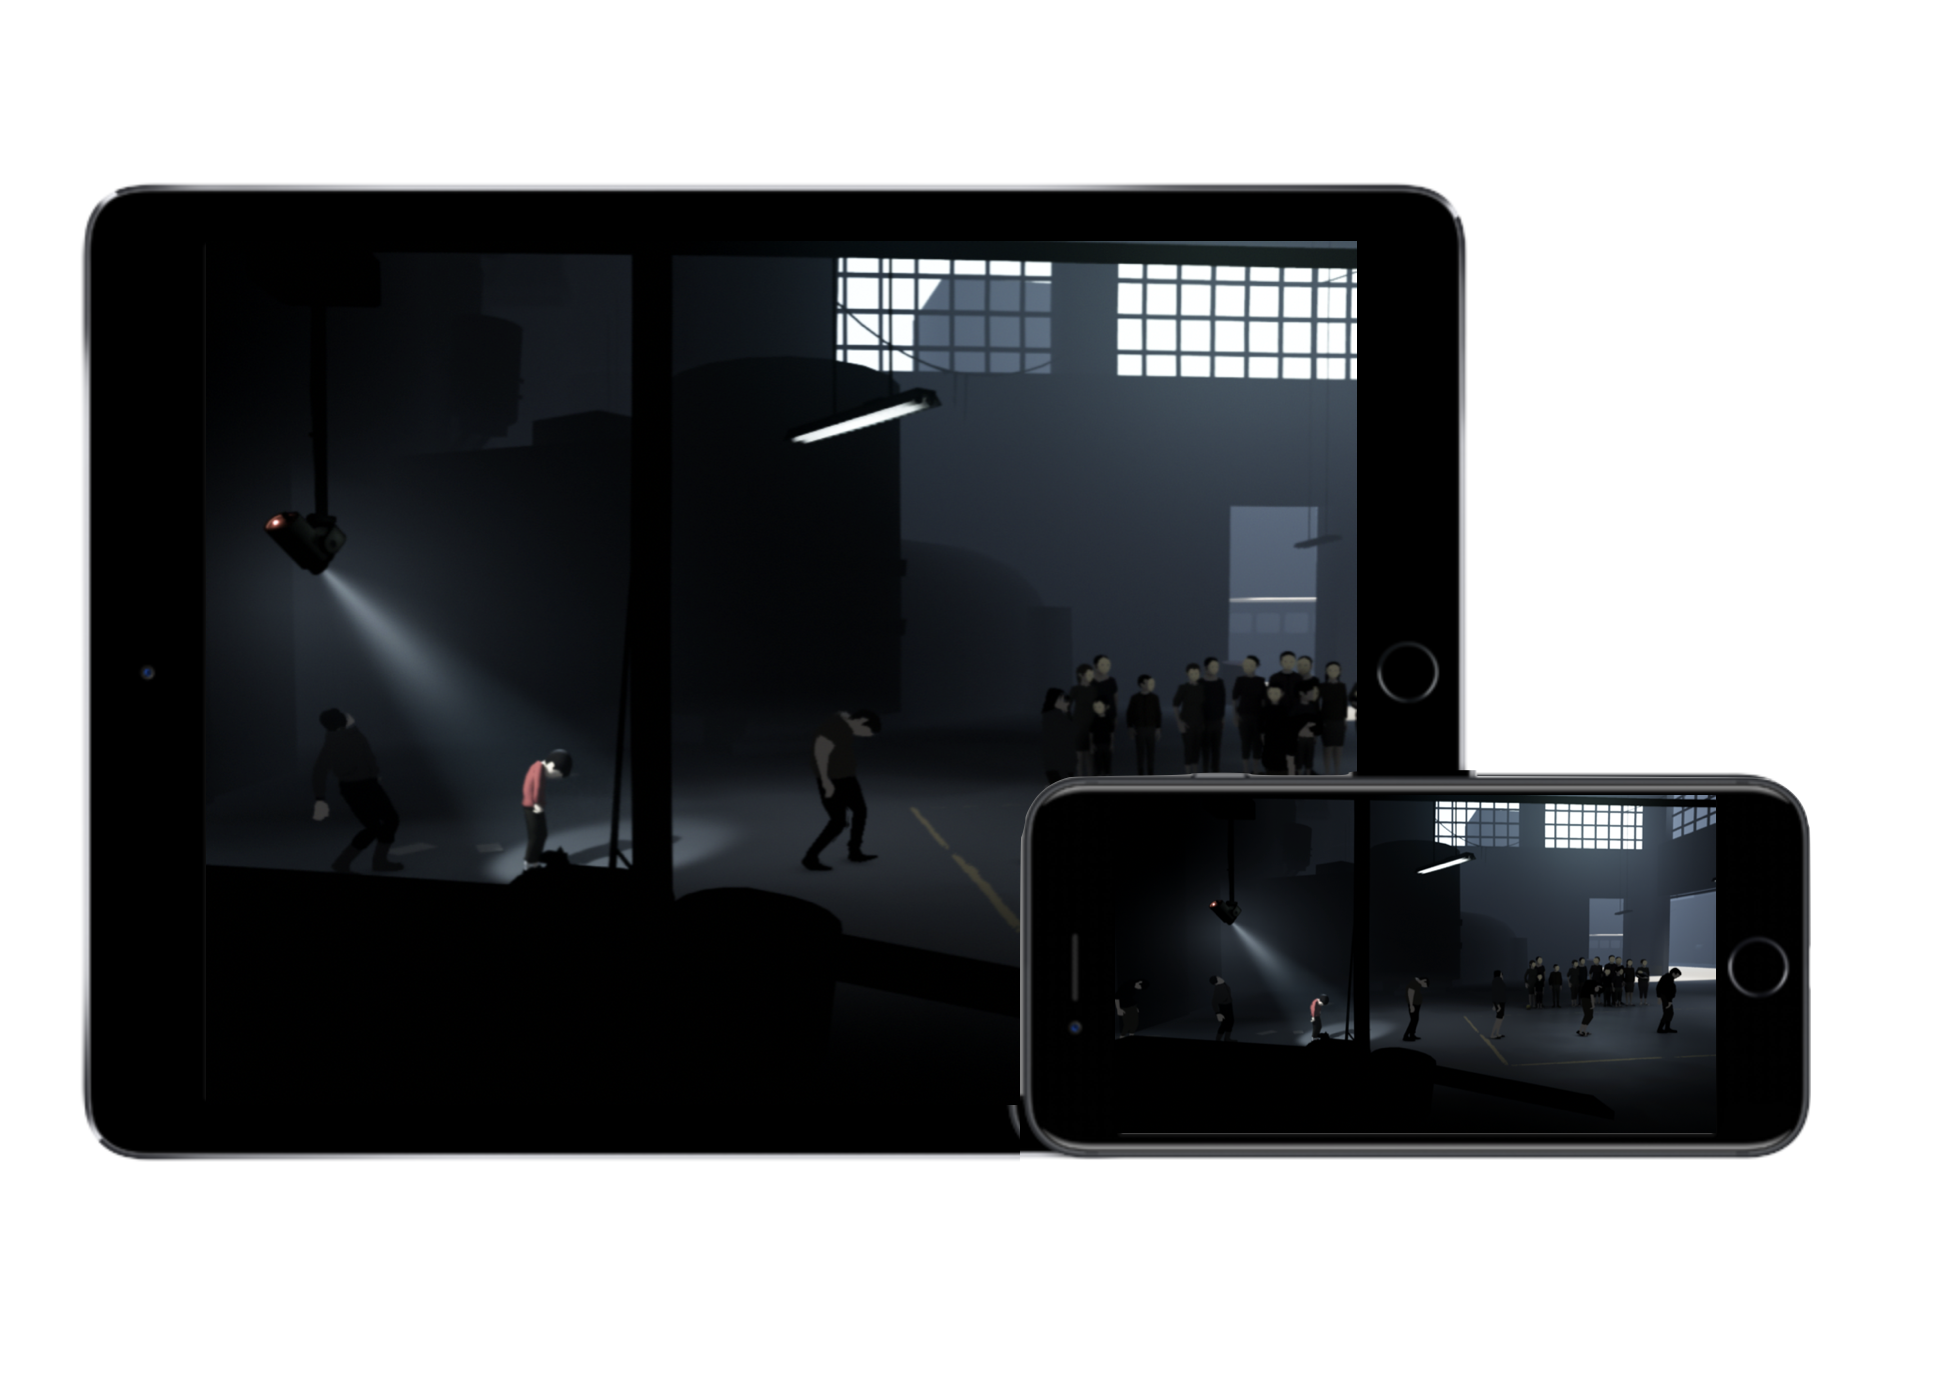 One of my favorite iOS games right now,   PlayDead's INSIDE   , uses iCloud saved game state to allow users to pick up and play across devices seamlessly. This really makes it enjoyable going from iOS on the go, to playing on iPad at home.